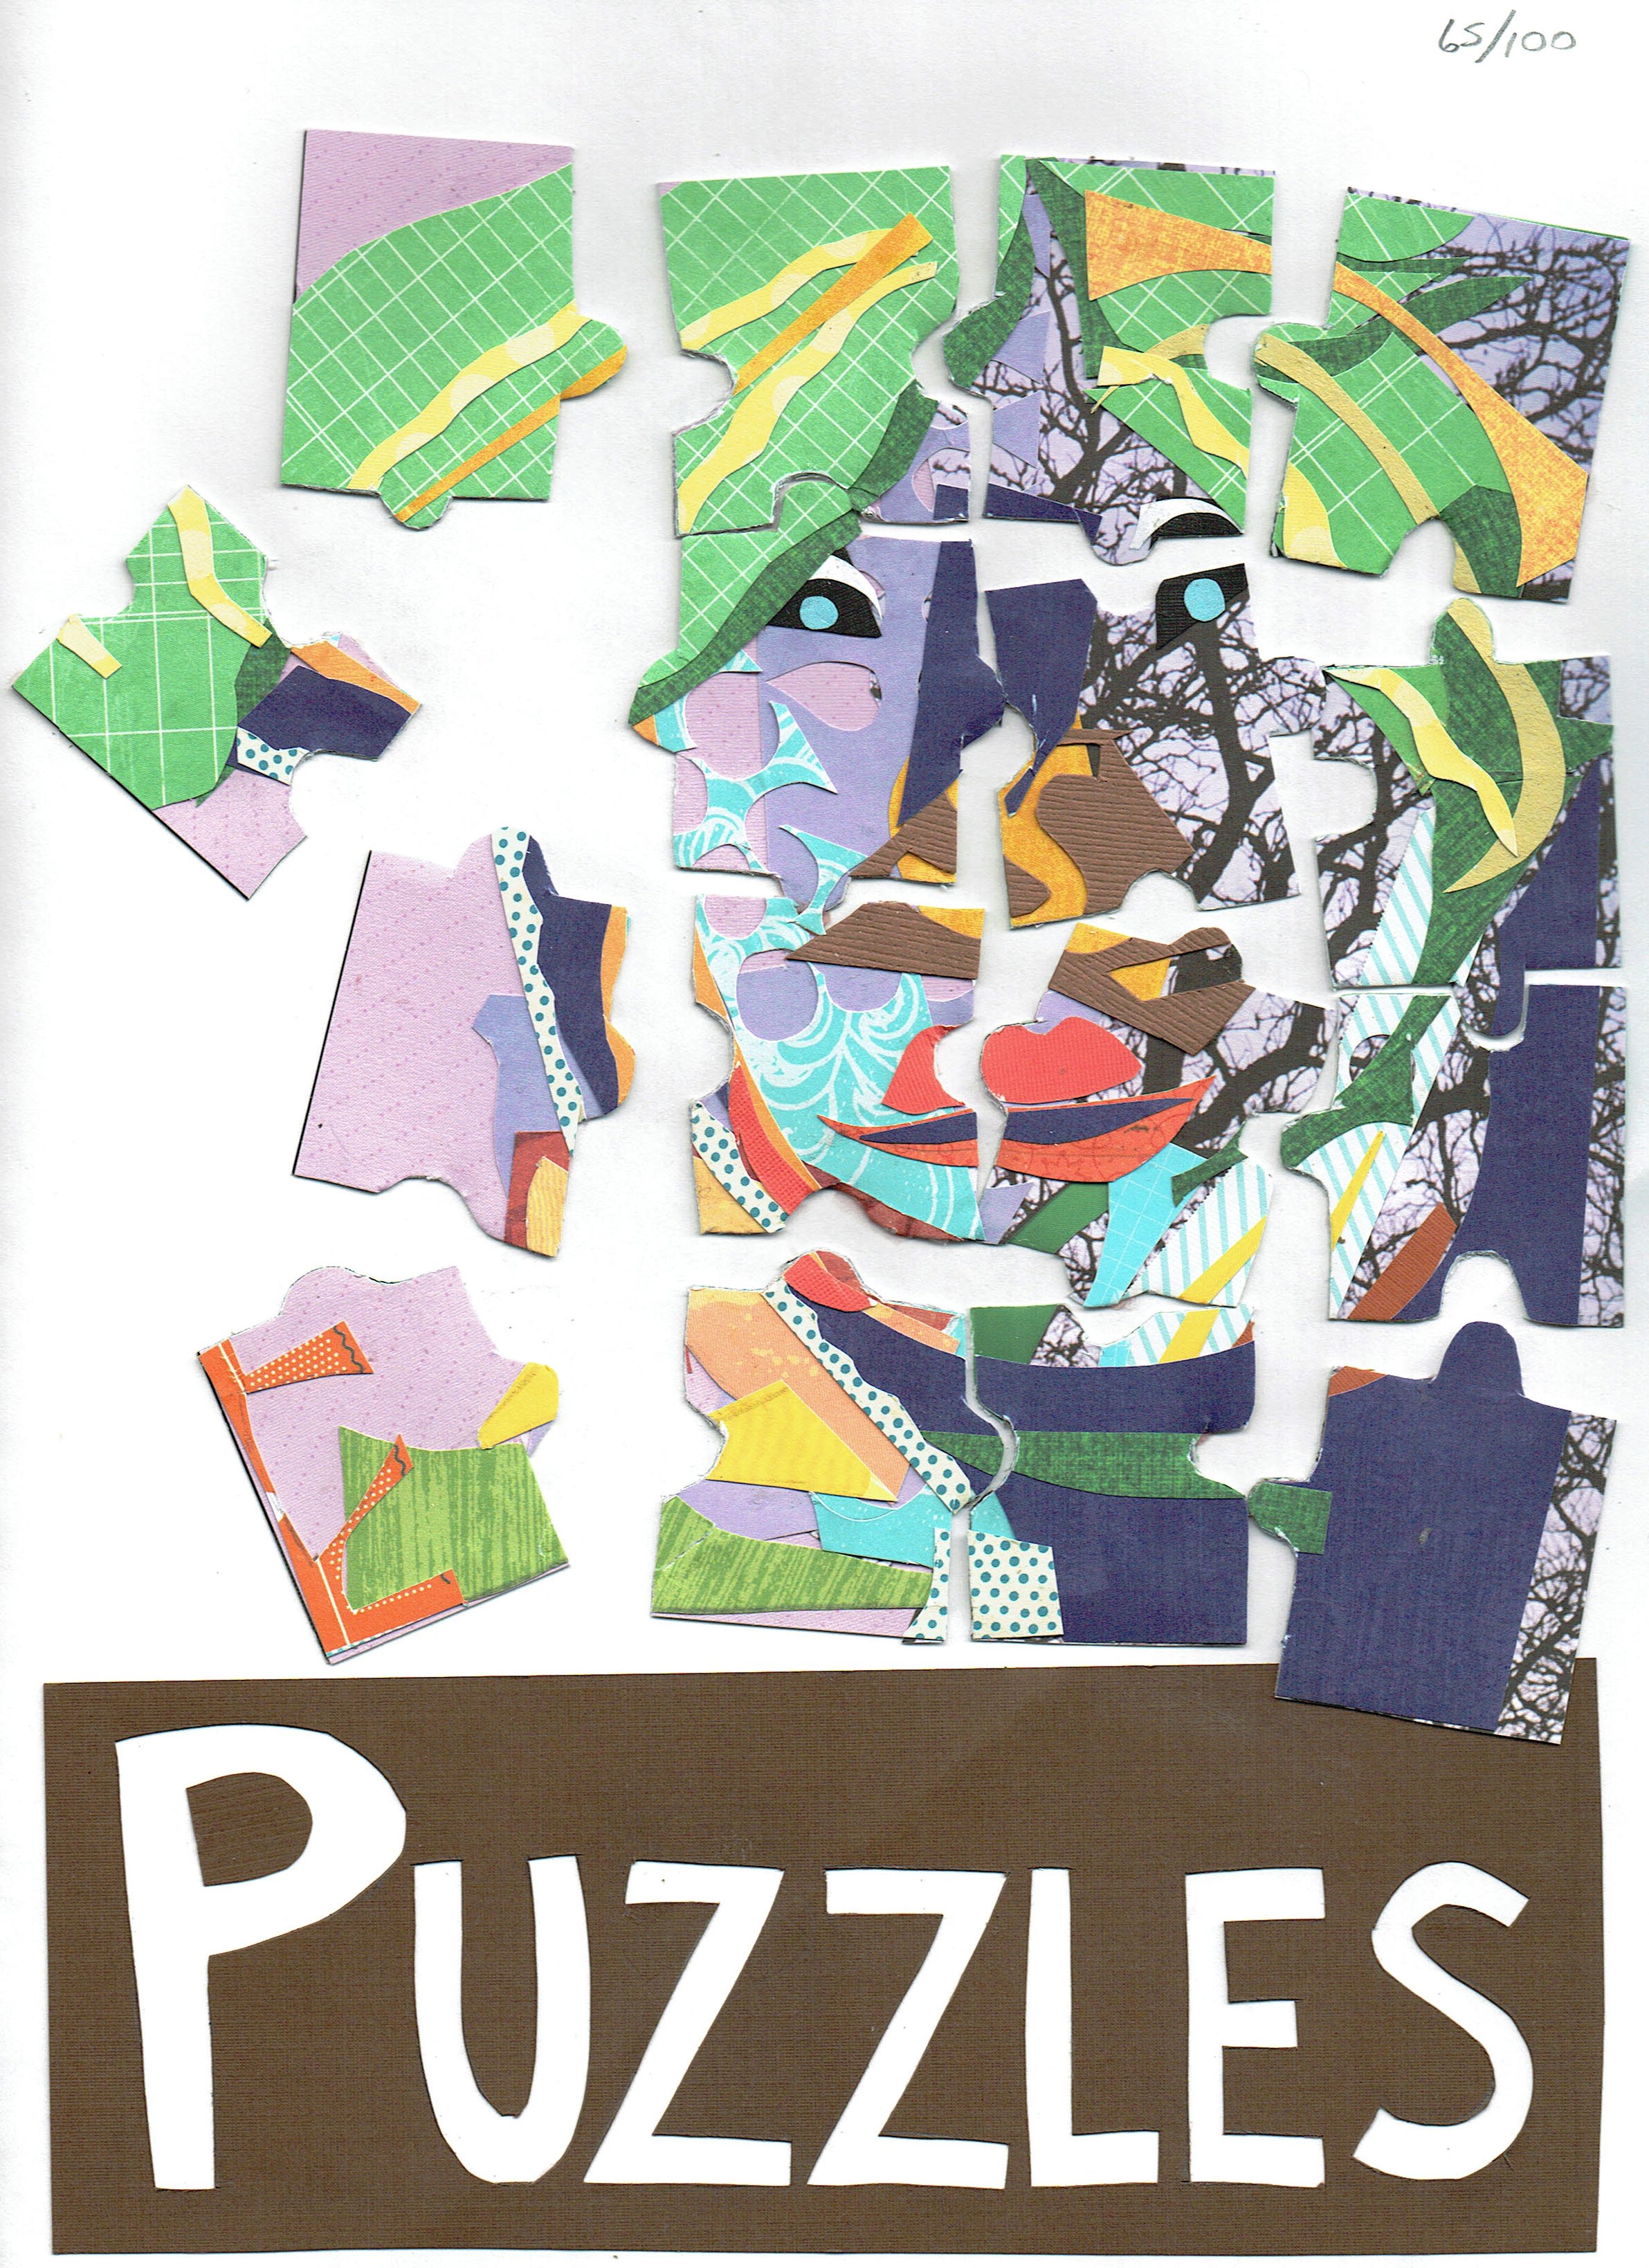 Day 65 - Puzzles